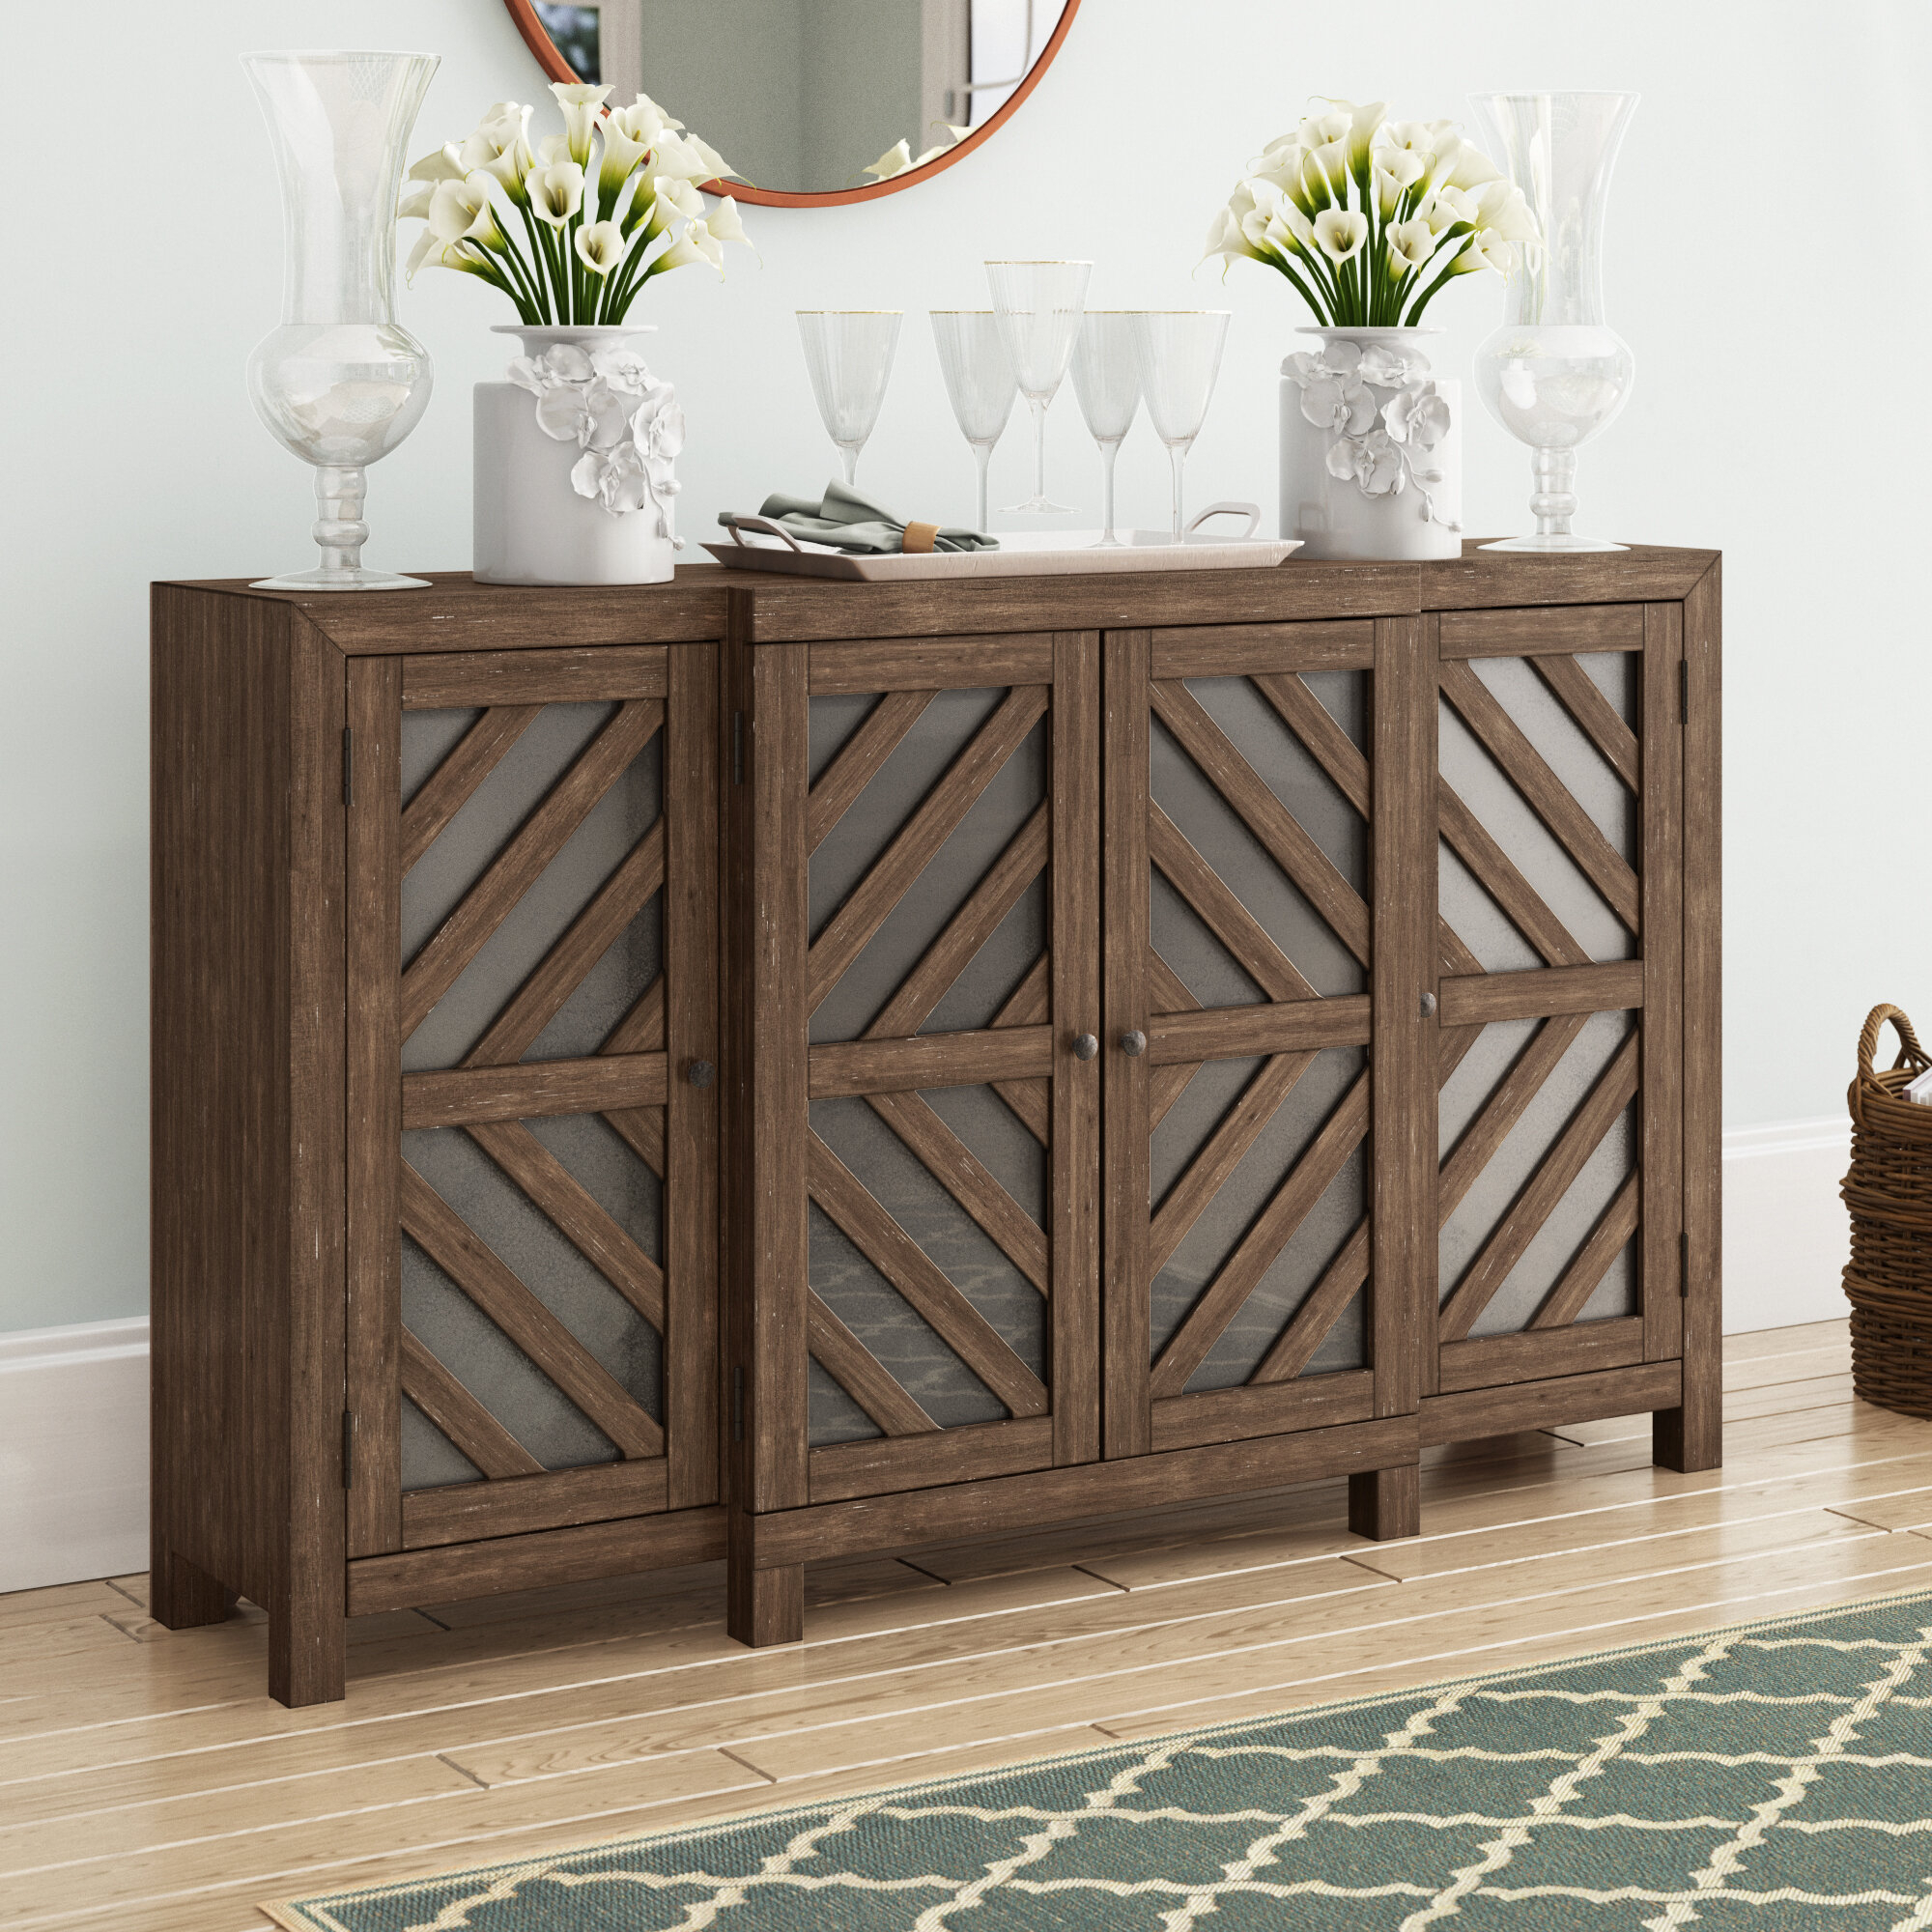 70 Inch Credenza | Wayfair Within Lainey Credenzas (View 2 of 30)